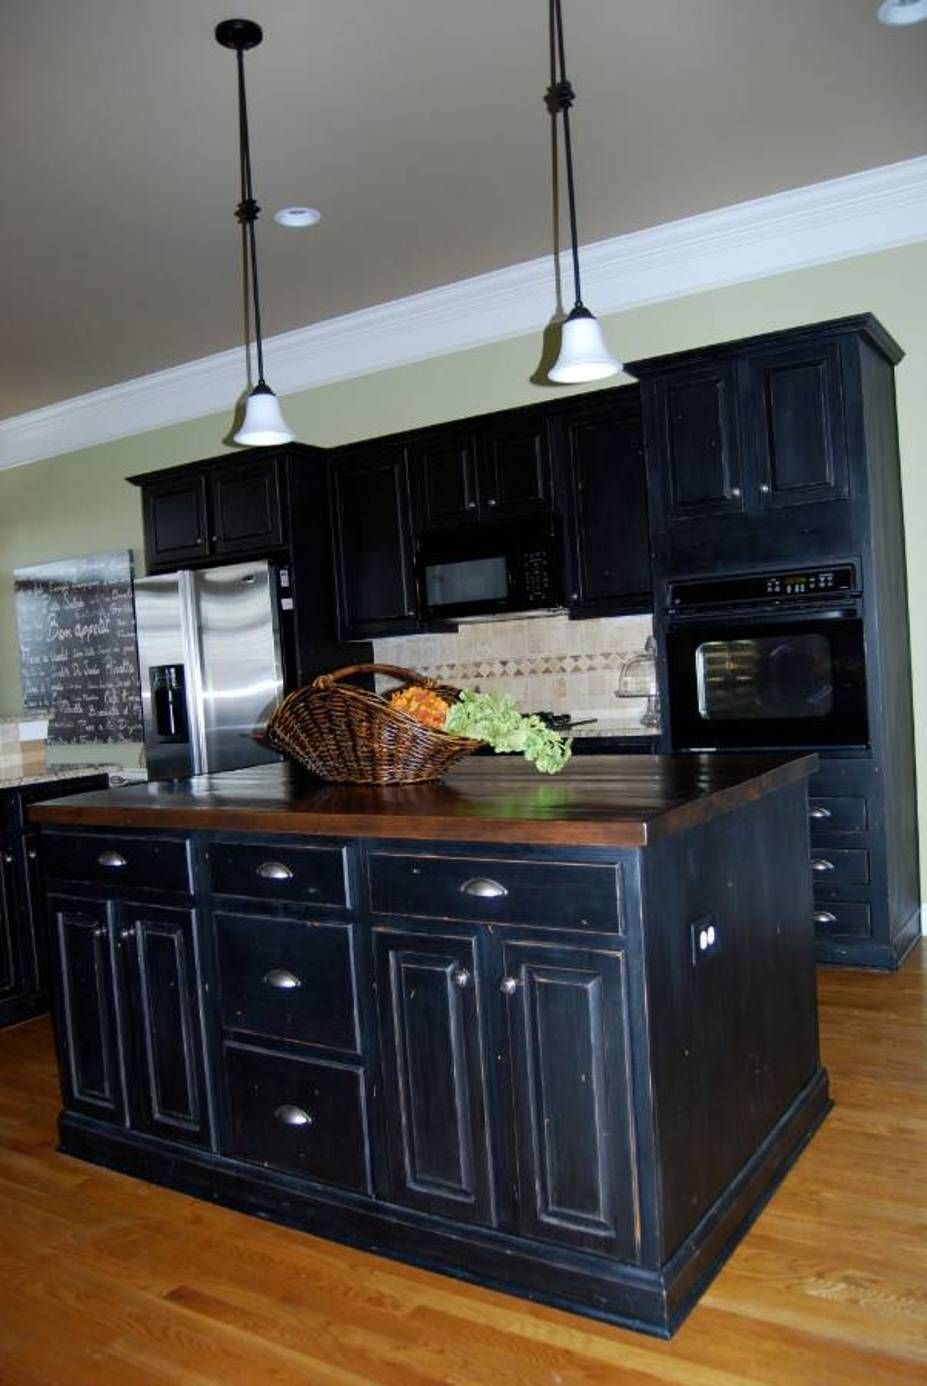 Furniture Suave Distressed Black Kitchen Cabinets Distressed Black Kitchen Cabinets Wi Distressed Kitchen Cabinets Distressed Kitchen Redo Kitchen Cabinets